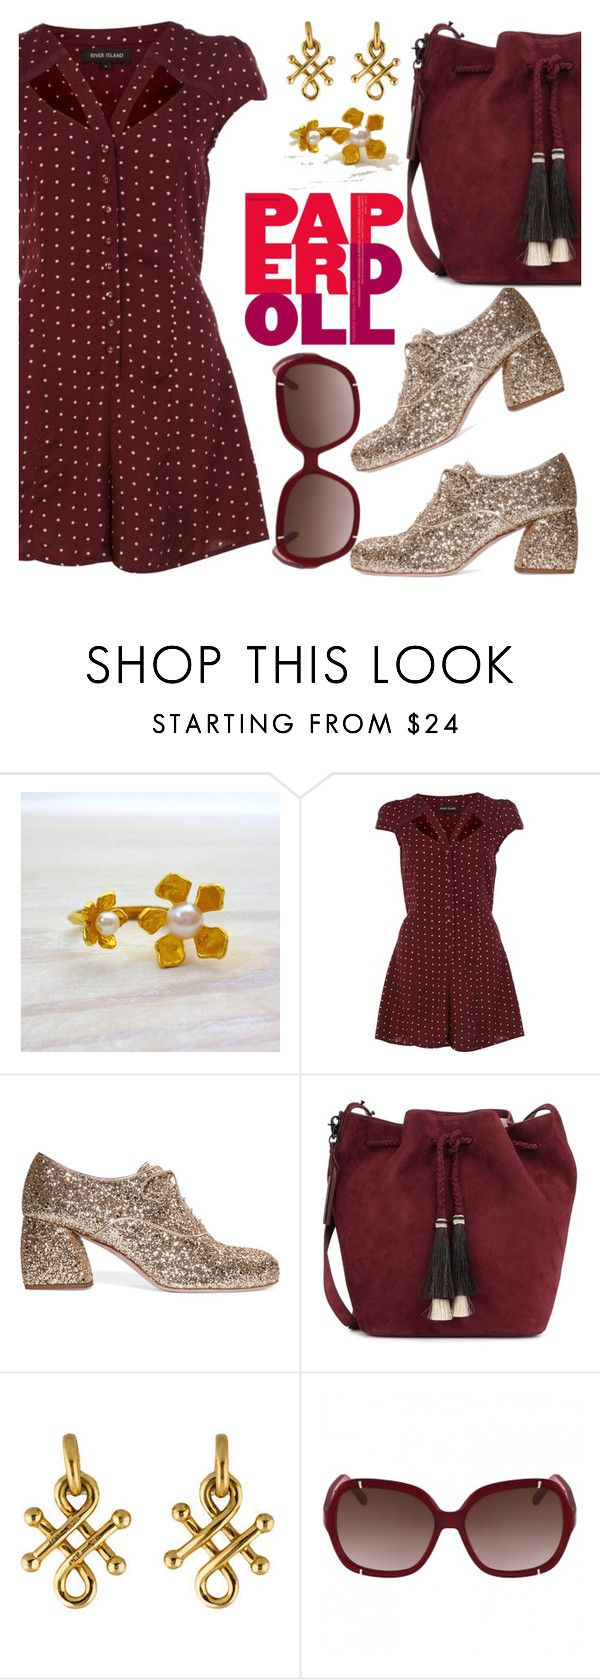 """""""Glitter on my toes"""" by pensivepeacock ❤ liked on Polyvore featuring River Island, Miu Miu and Loeffler Randall"""